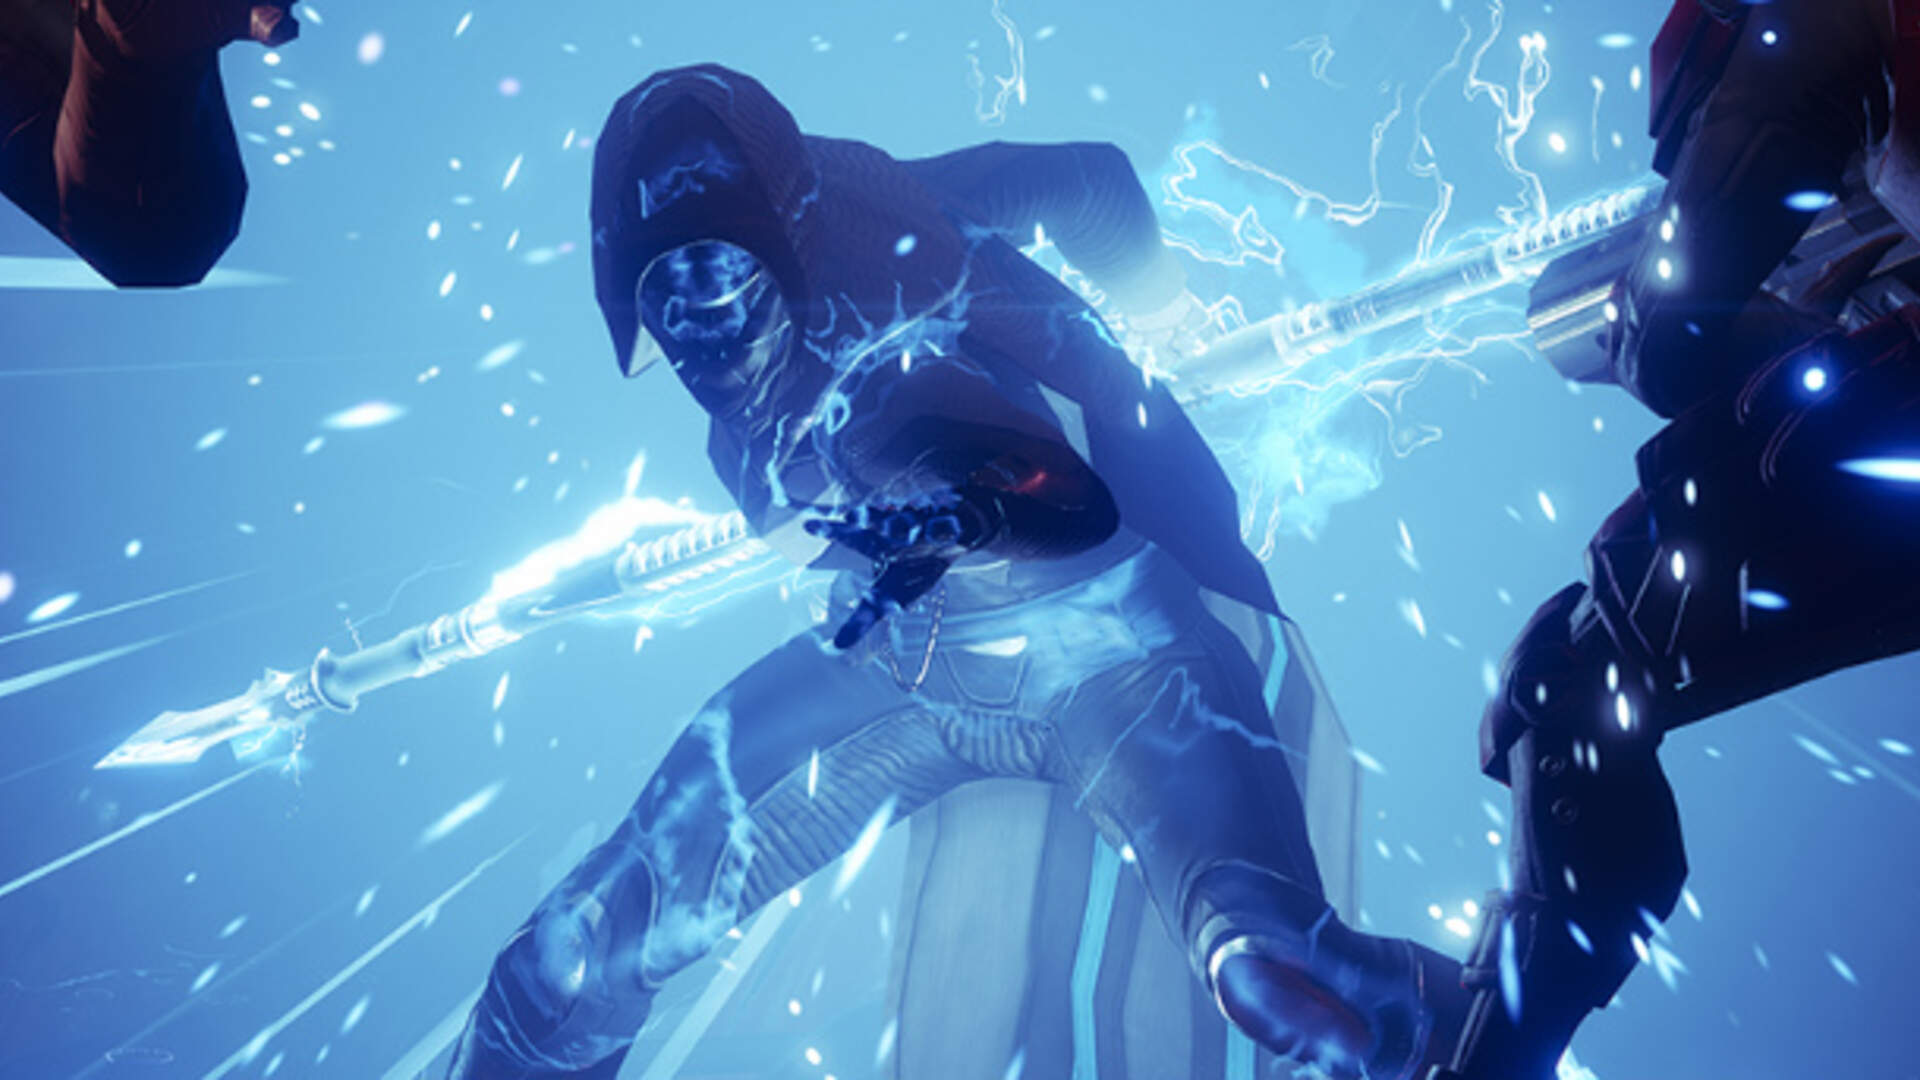 Destiny 2's XP Throttling Isn't The Problem, It's a Lack of Transparency and Framing